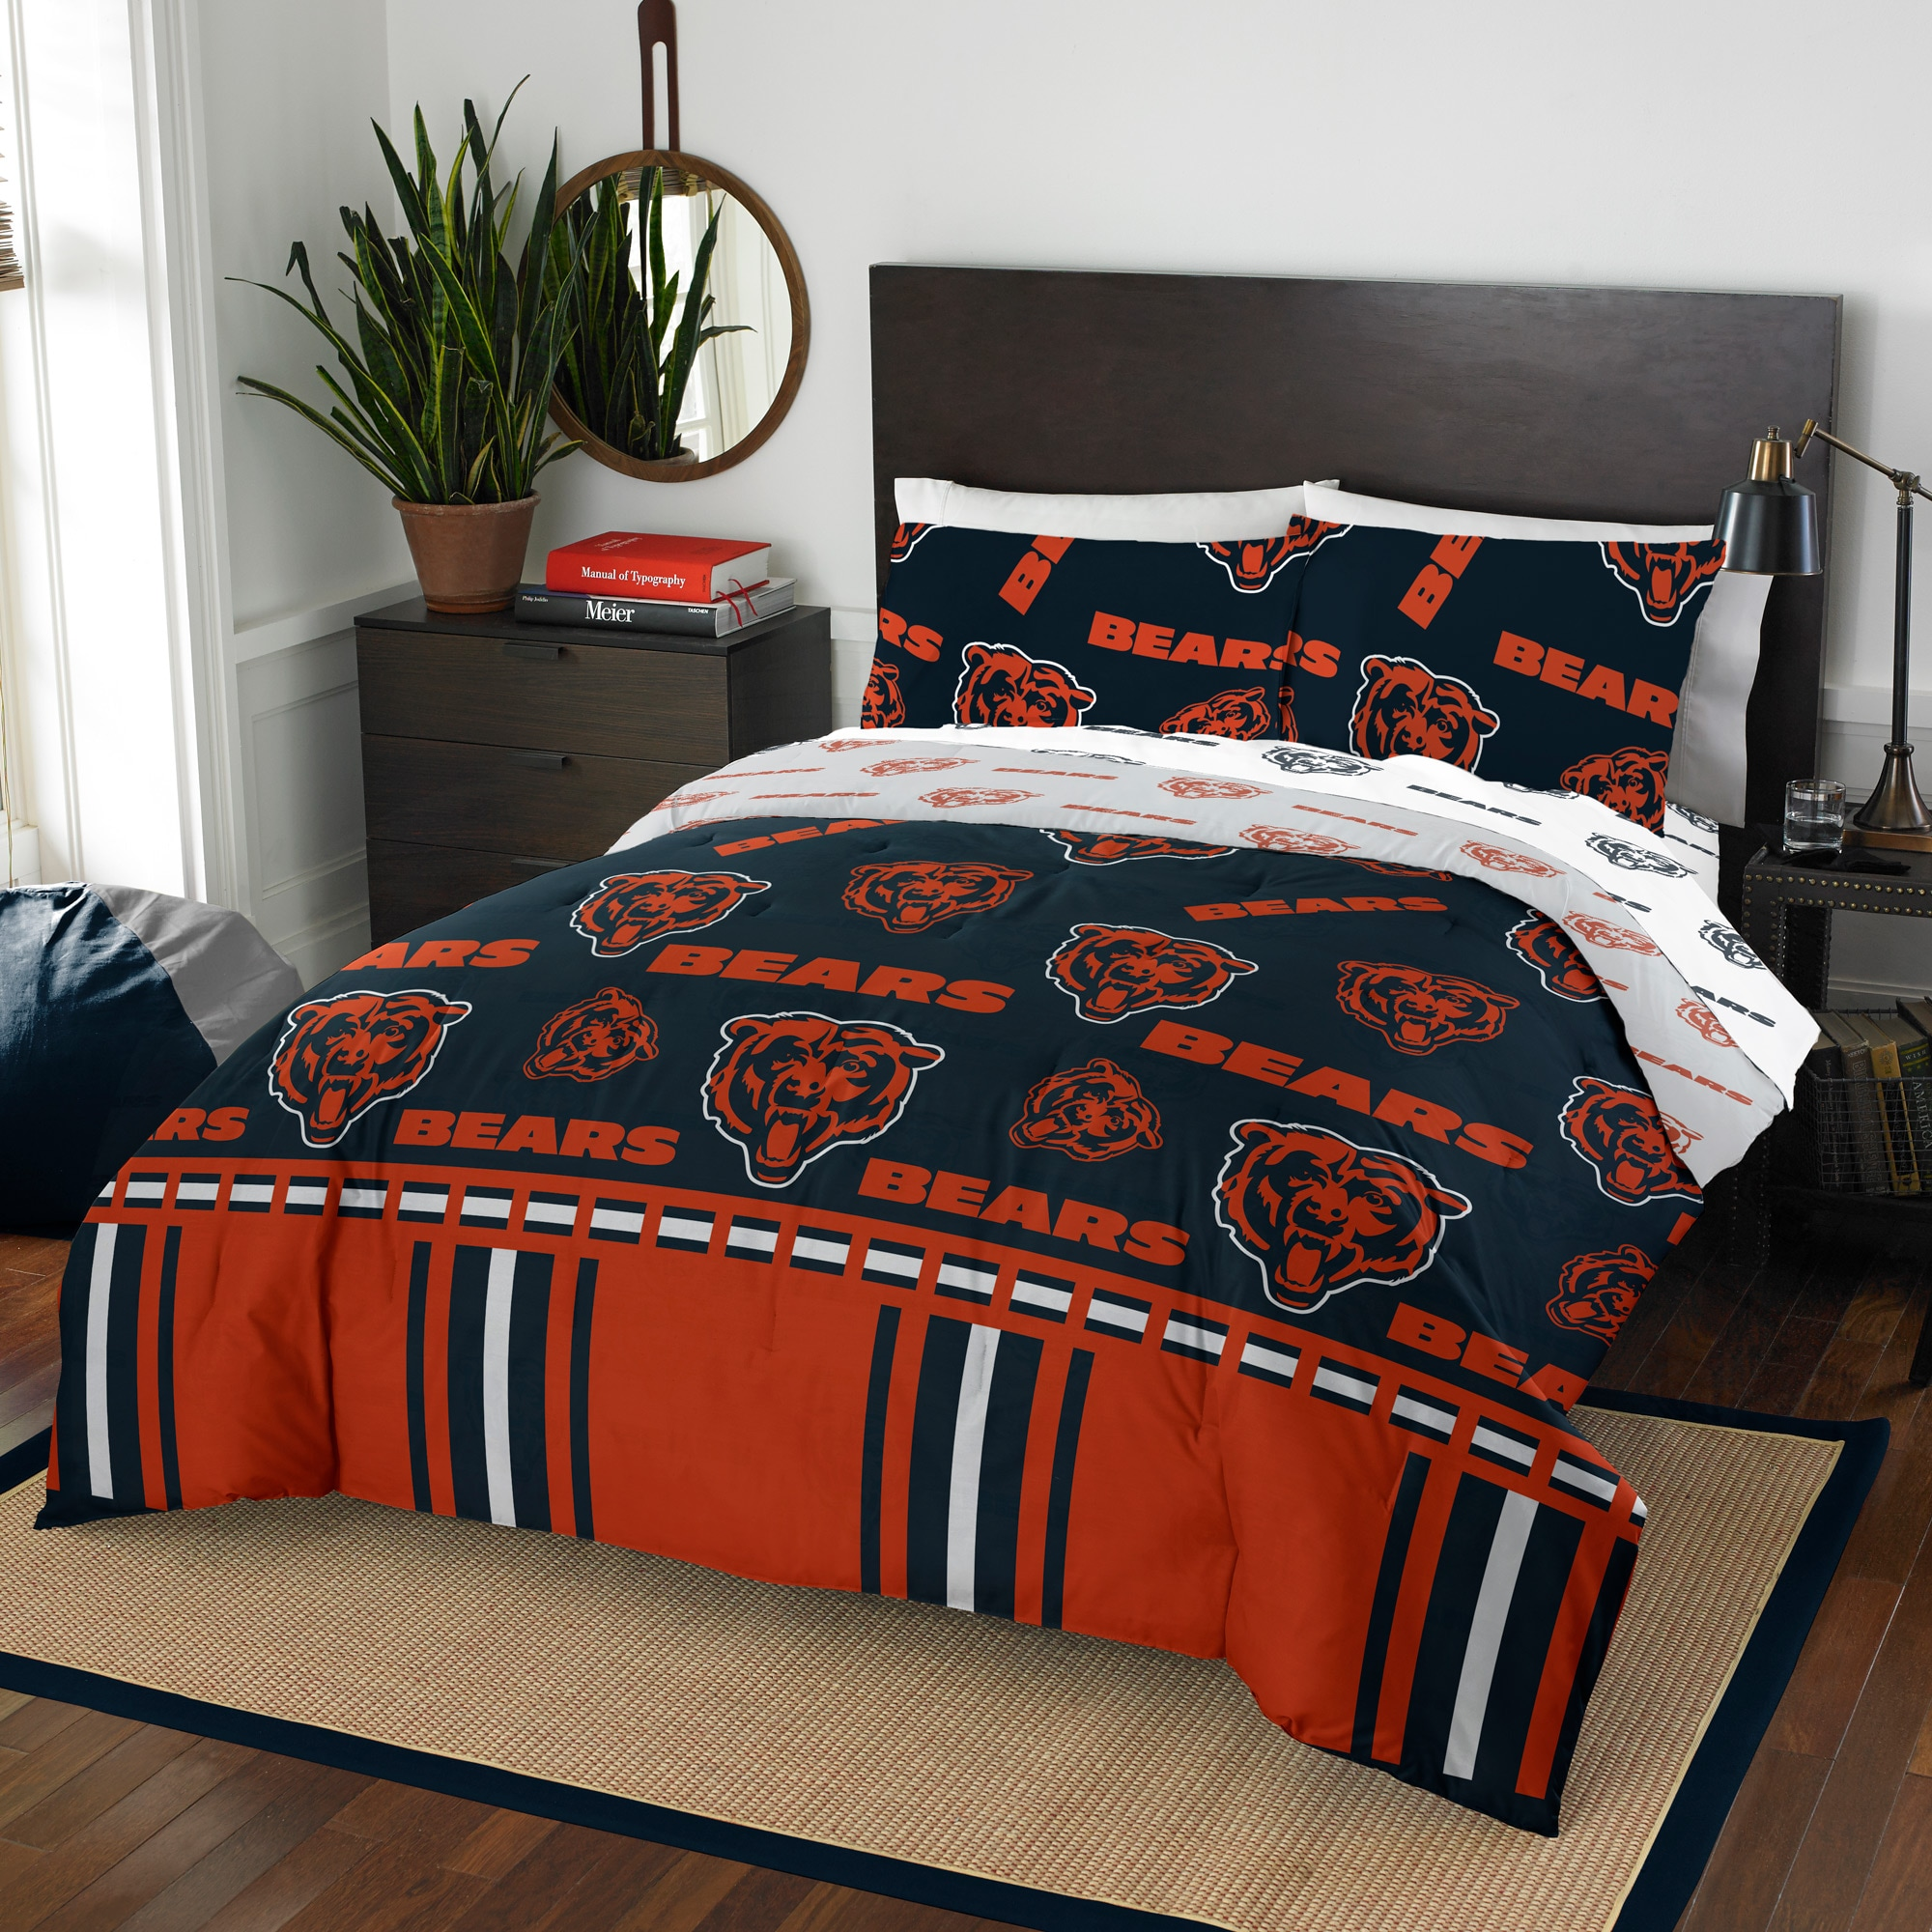 Chicago Bears The Northwest Company 5-Piece Queen Bed in a Bag Set